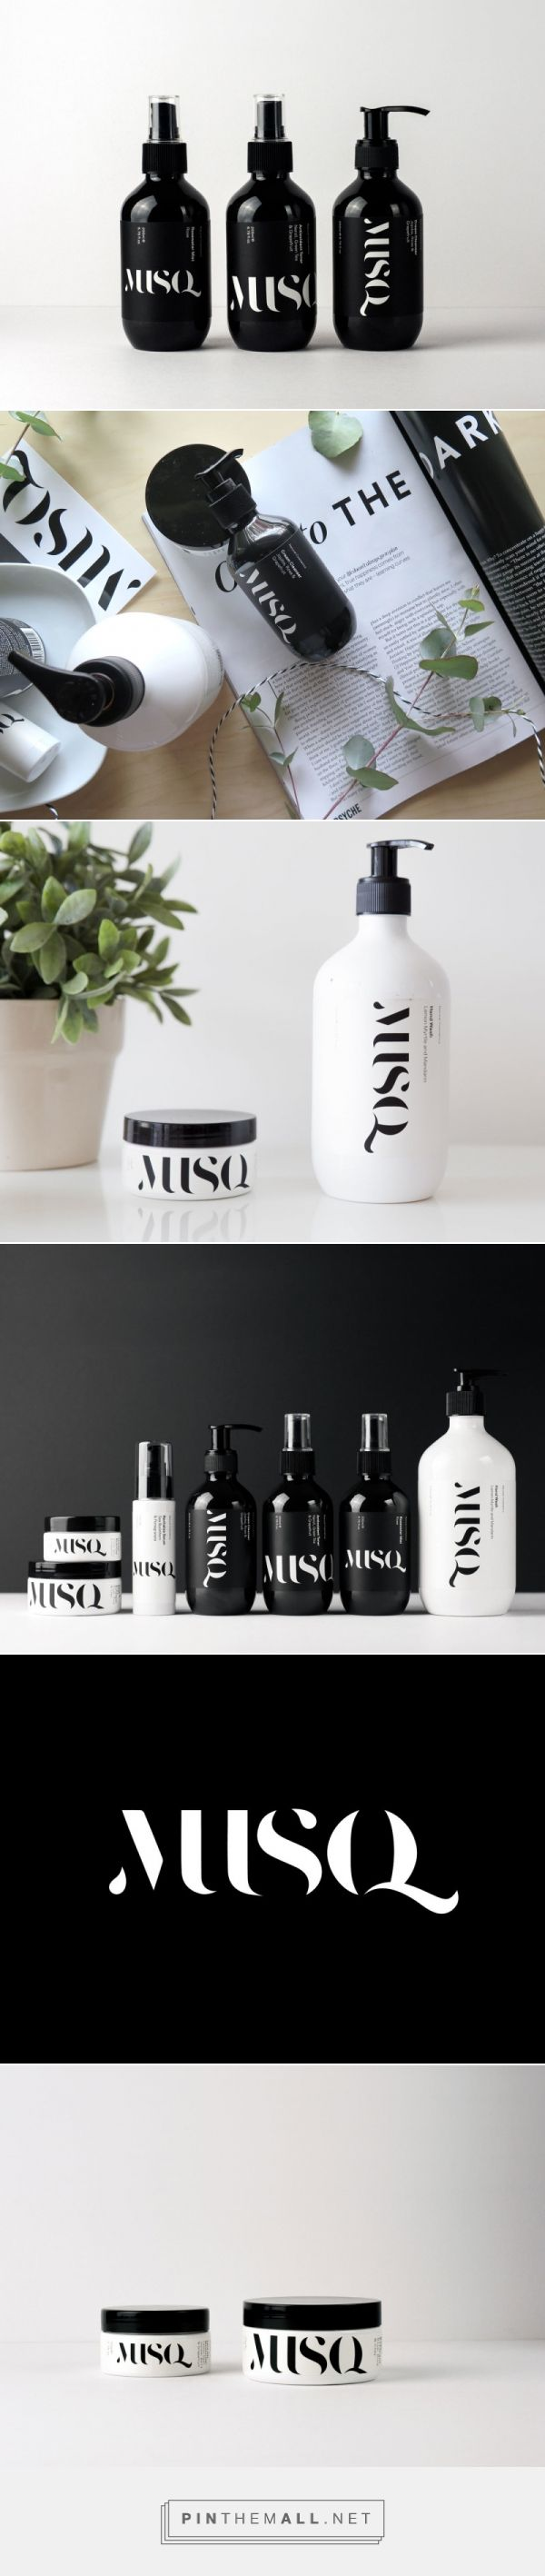 Musq: Natural Skincare With Clean Design | Trendland - created via https://pinthemall.net